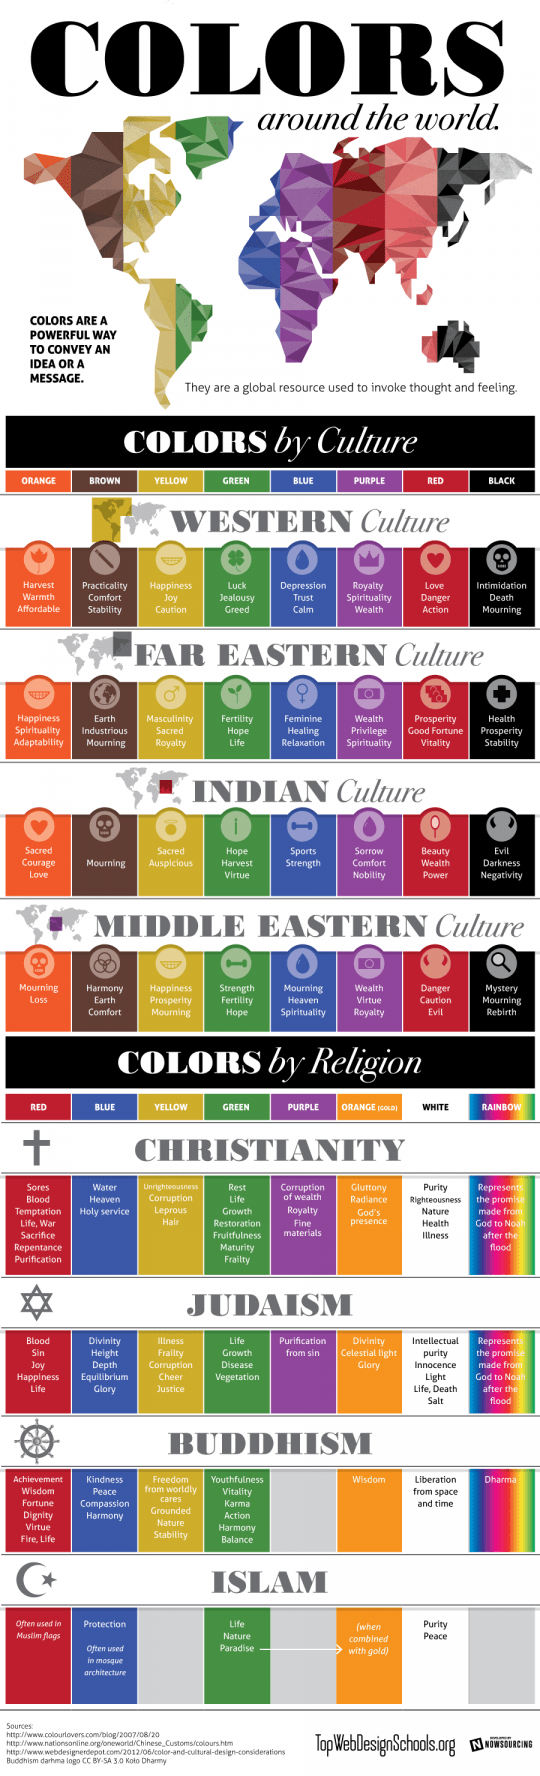 Colors Around the World